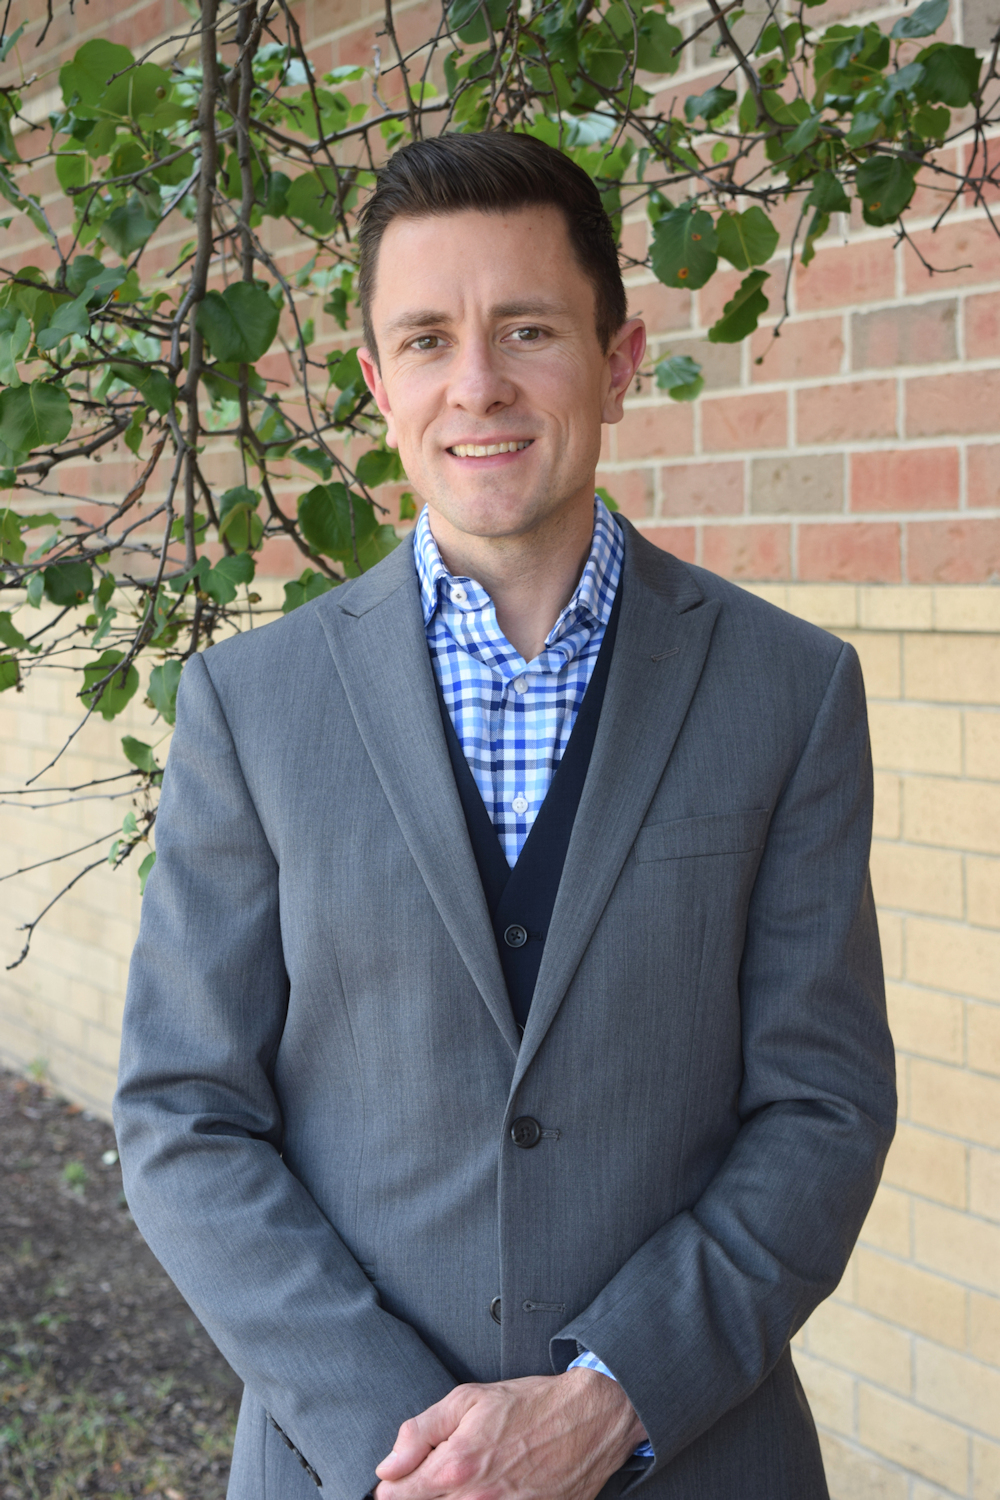 Stephen Hollowell, Buyer's Agent for The Bouma Group Realtors